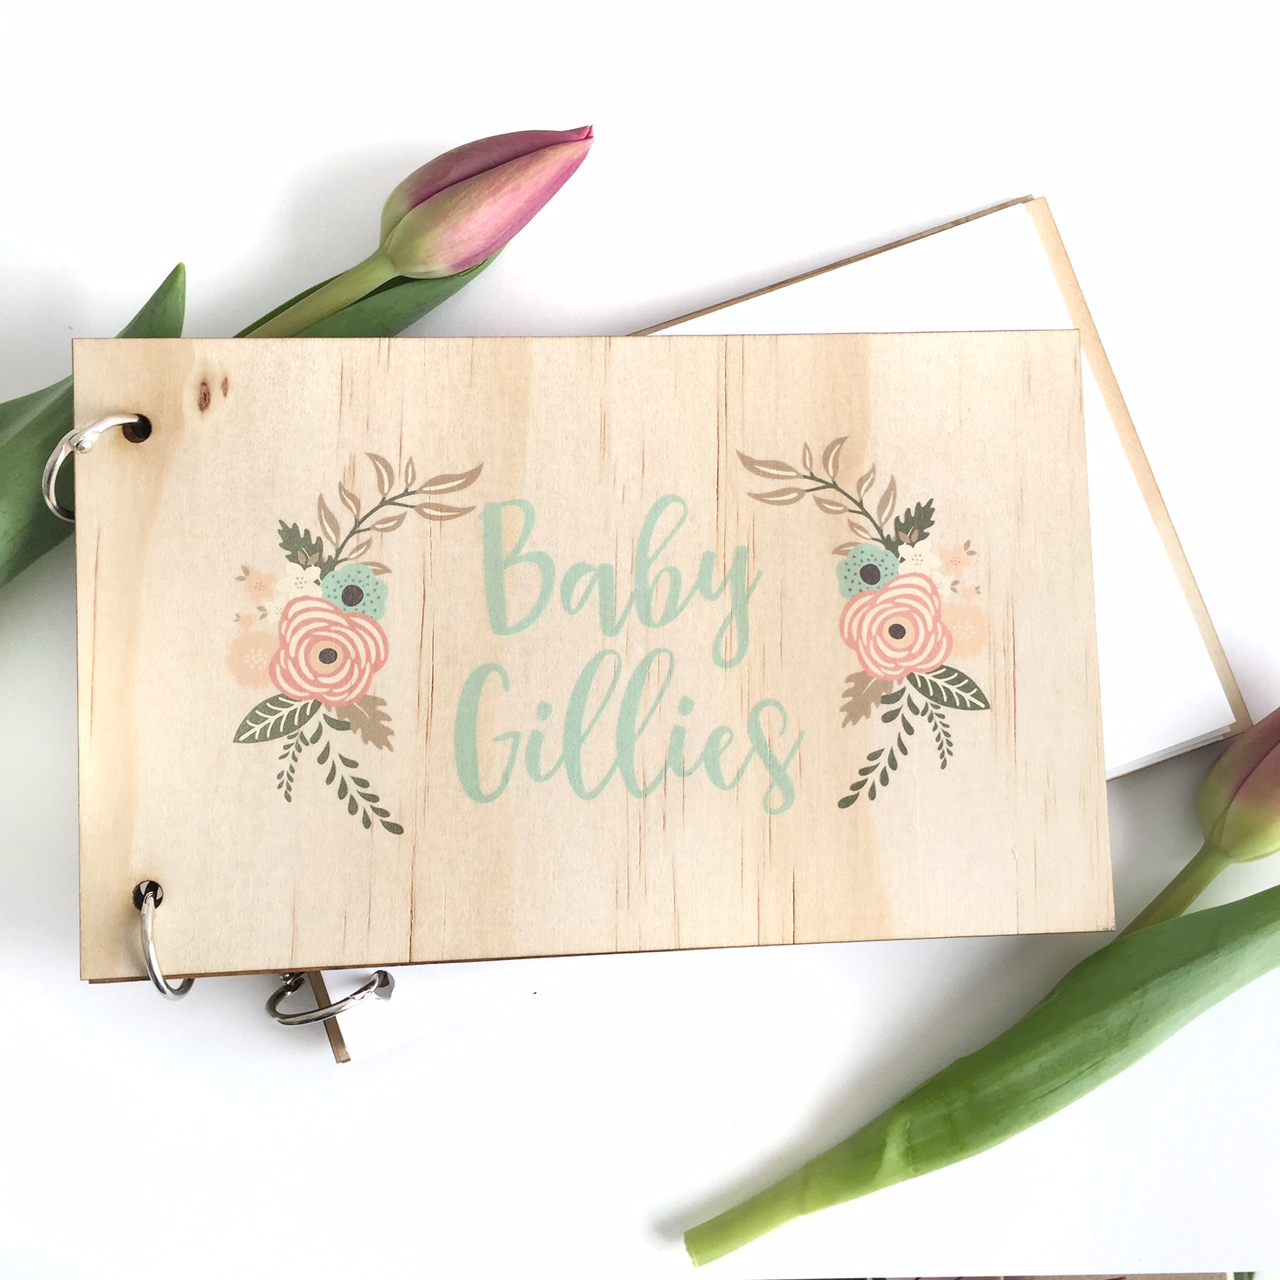 Baby Shower - With laurels guest book